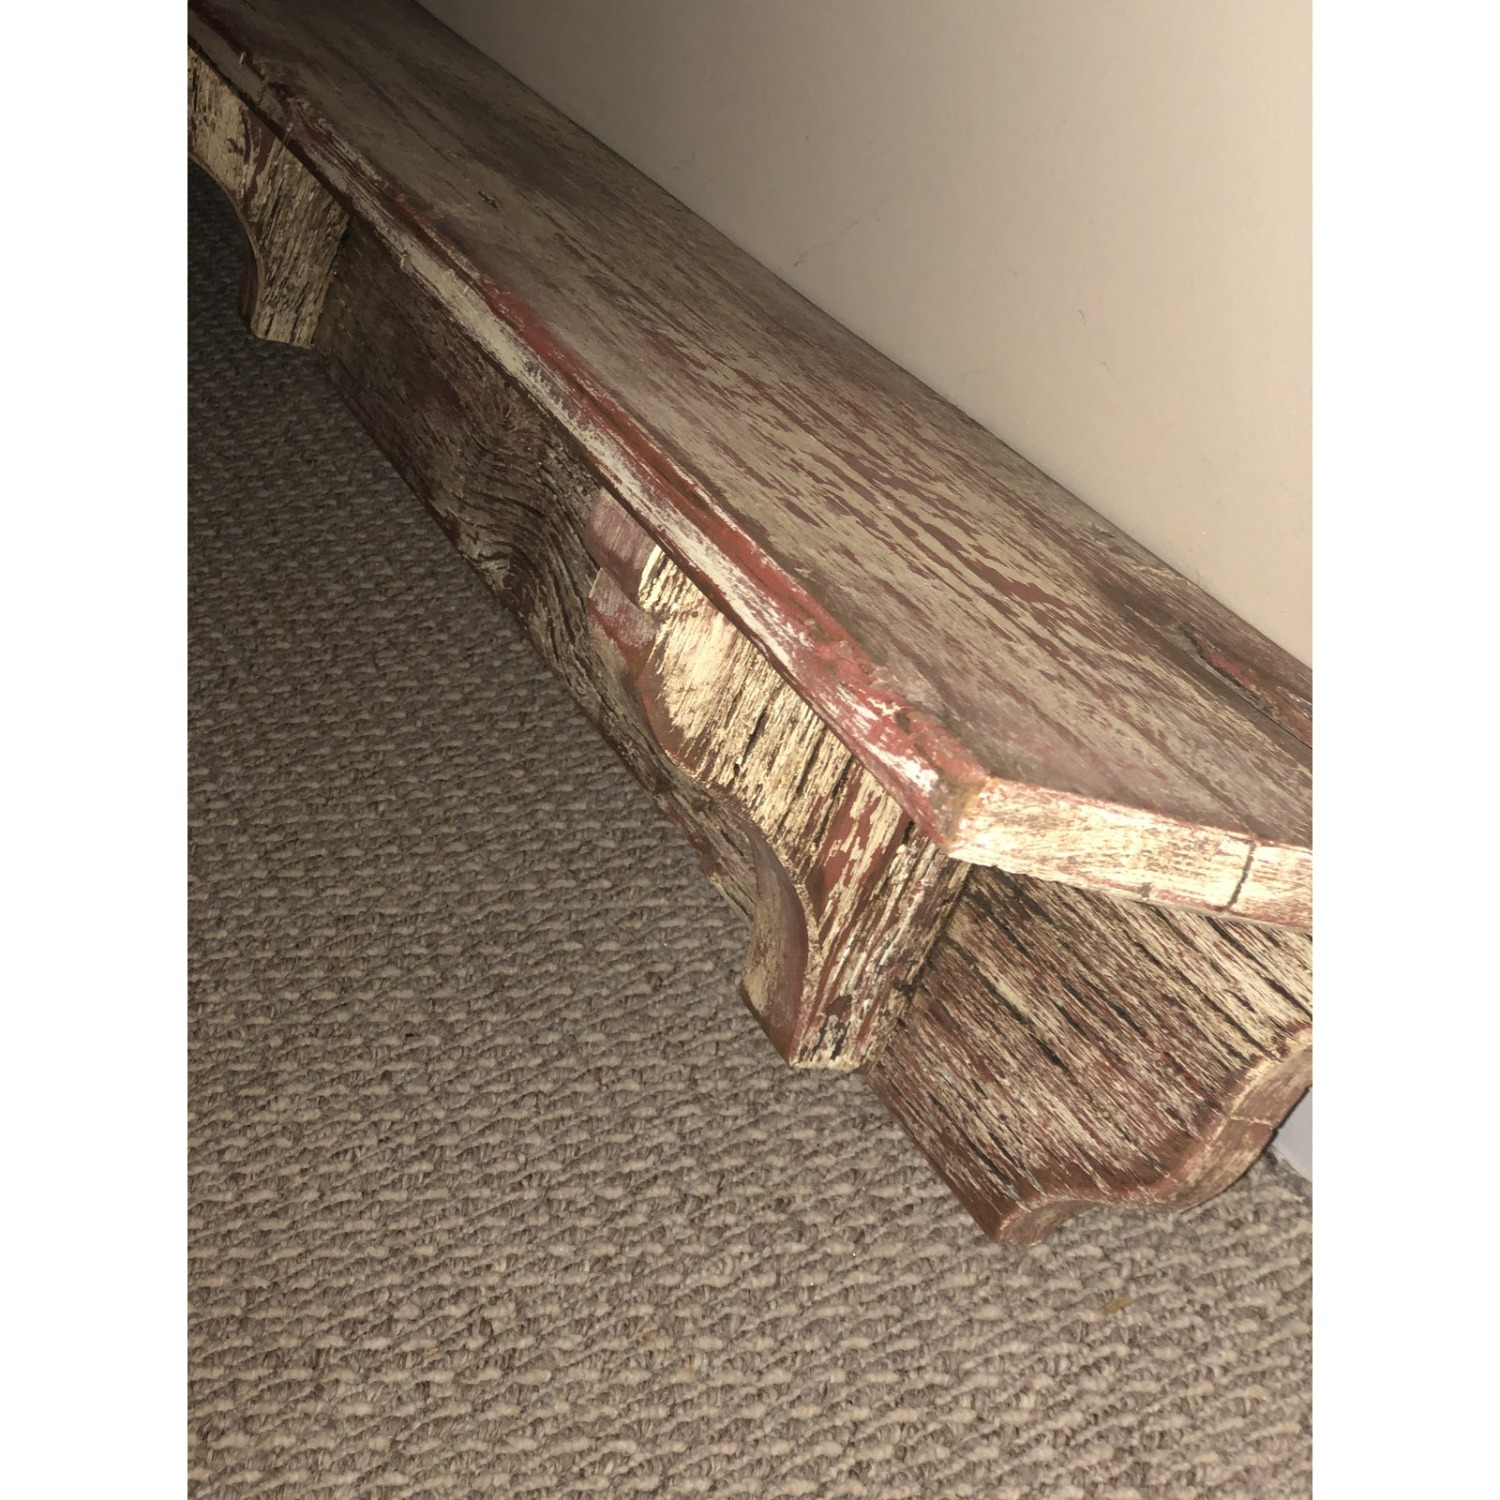 Vintage Rustic Extra Long Shelf or Mantel - image-1